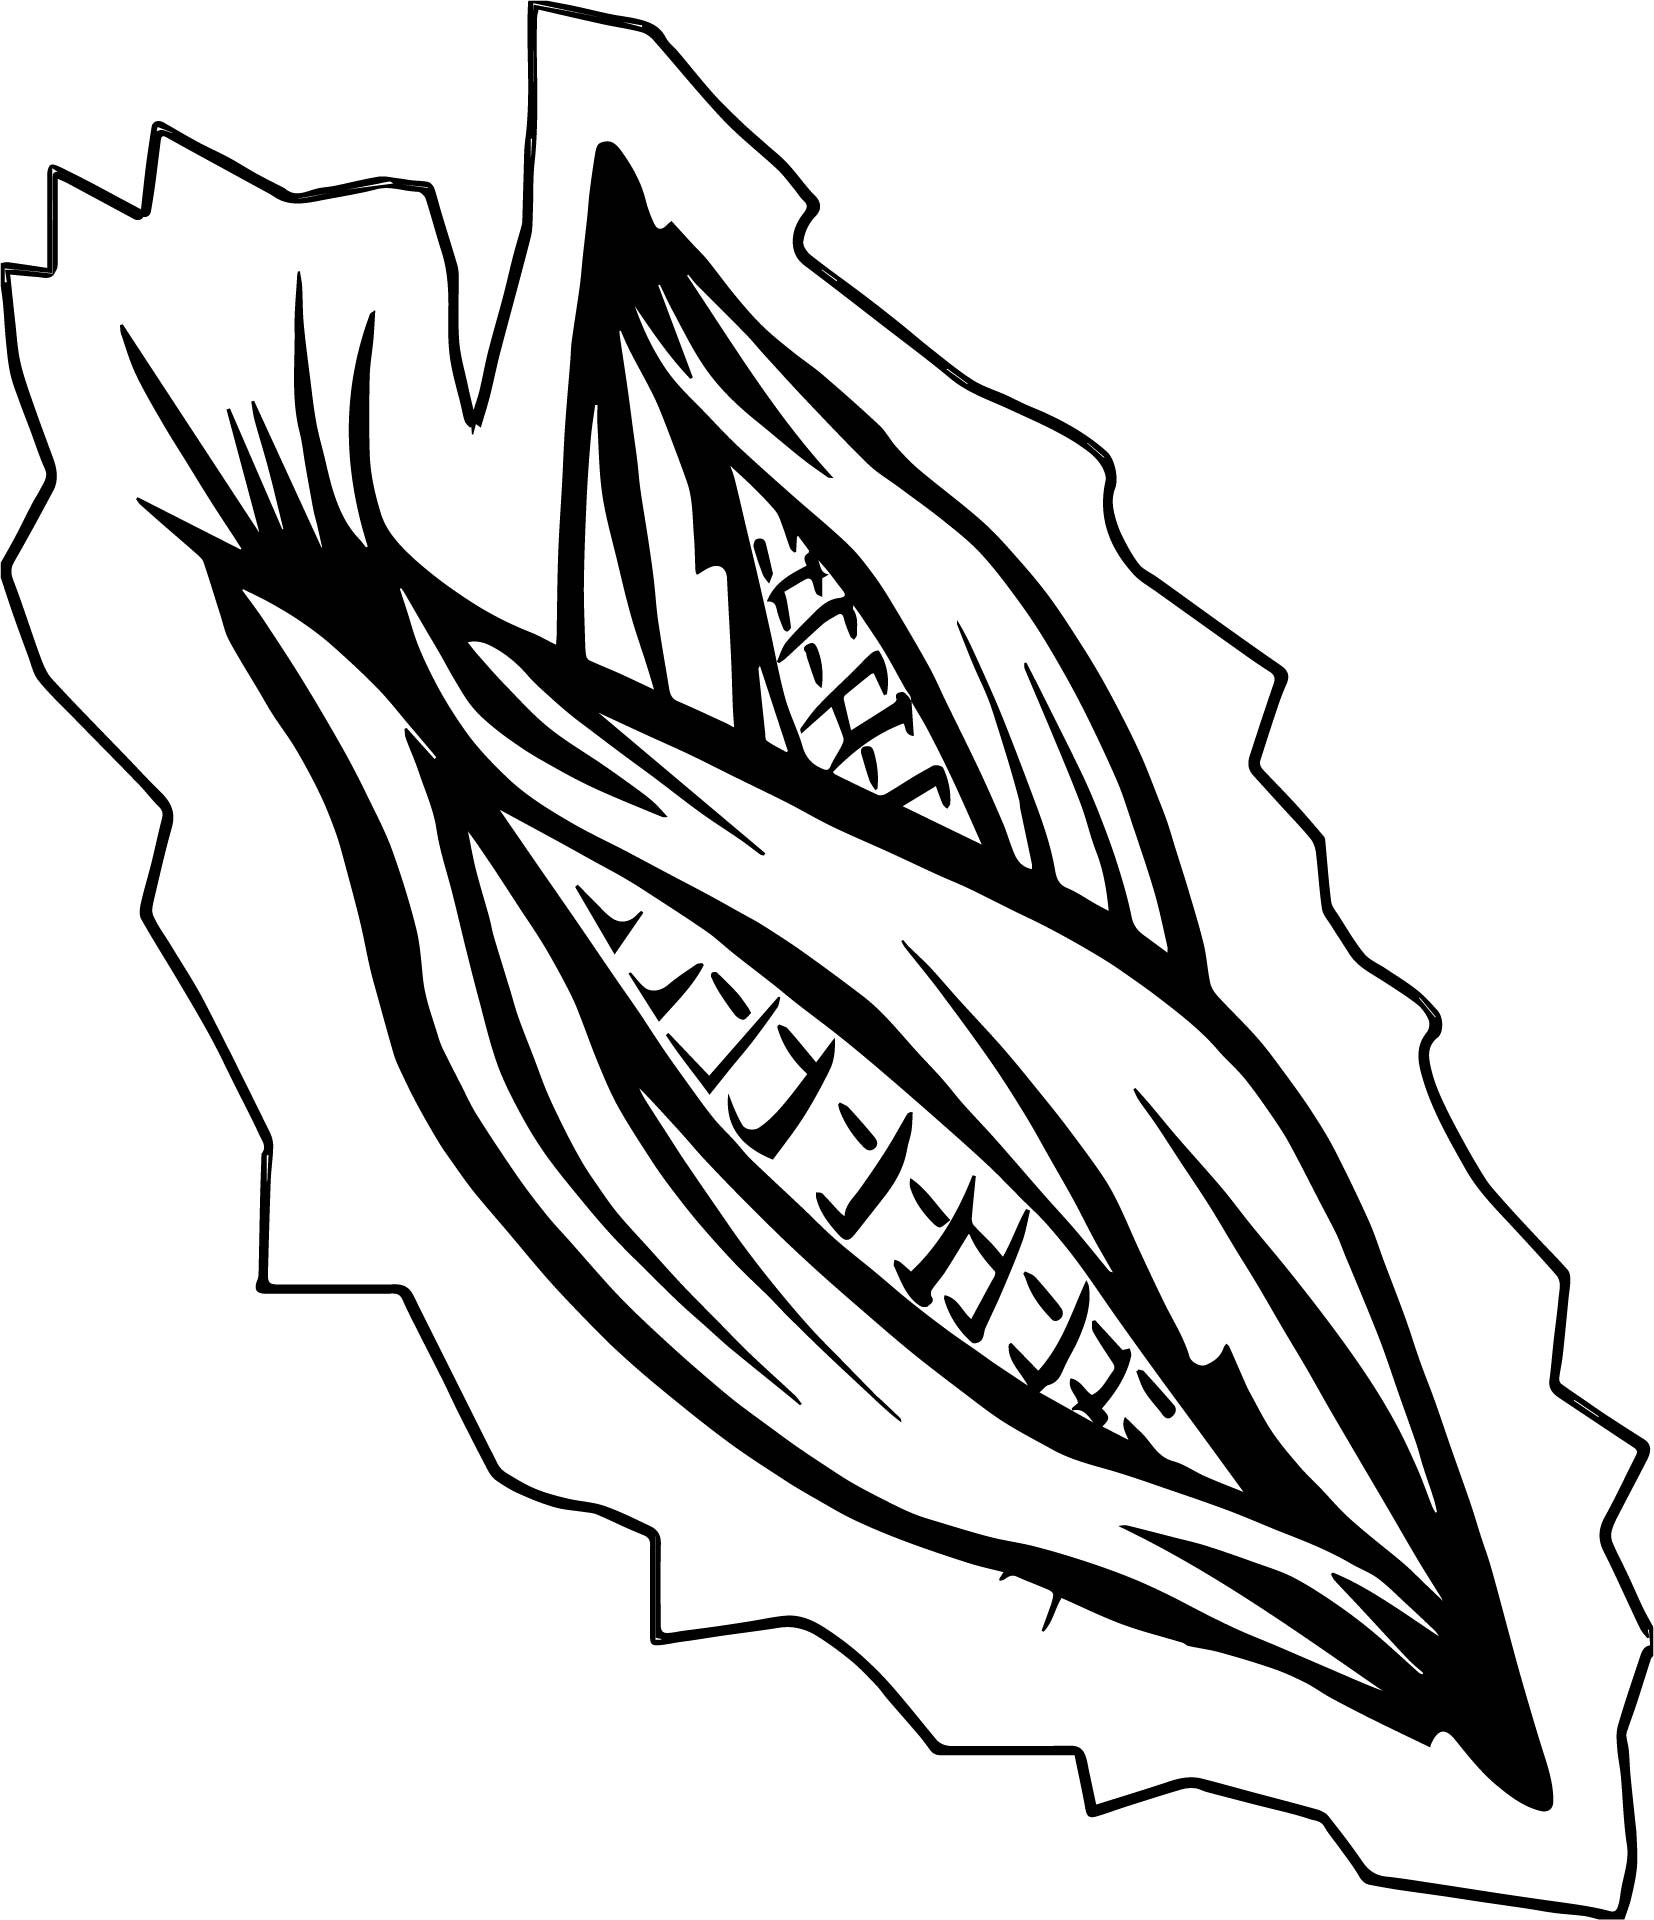 Ear Of Corn Coloring Page At Getcolorings